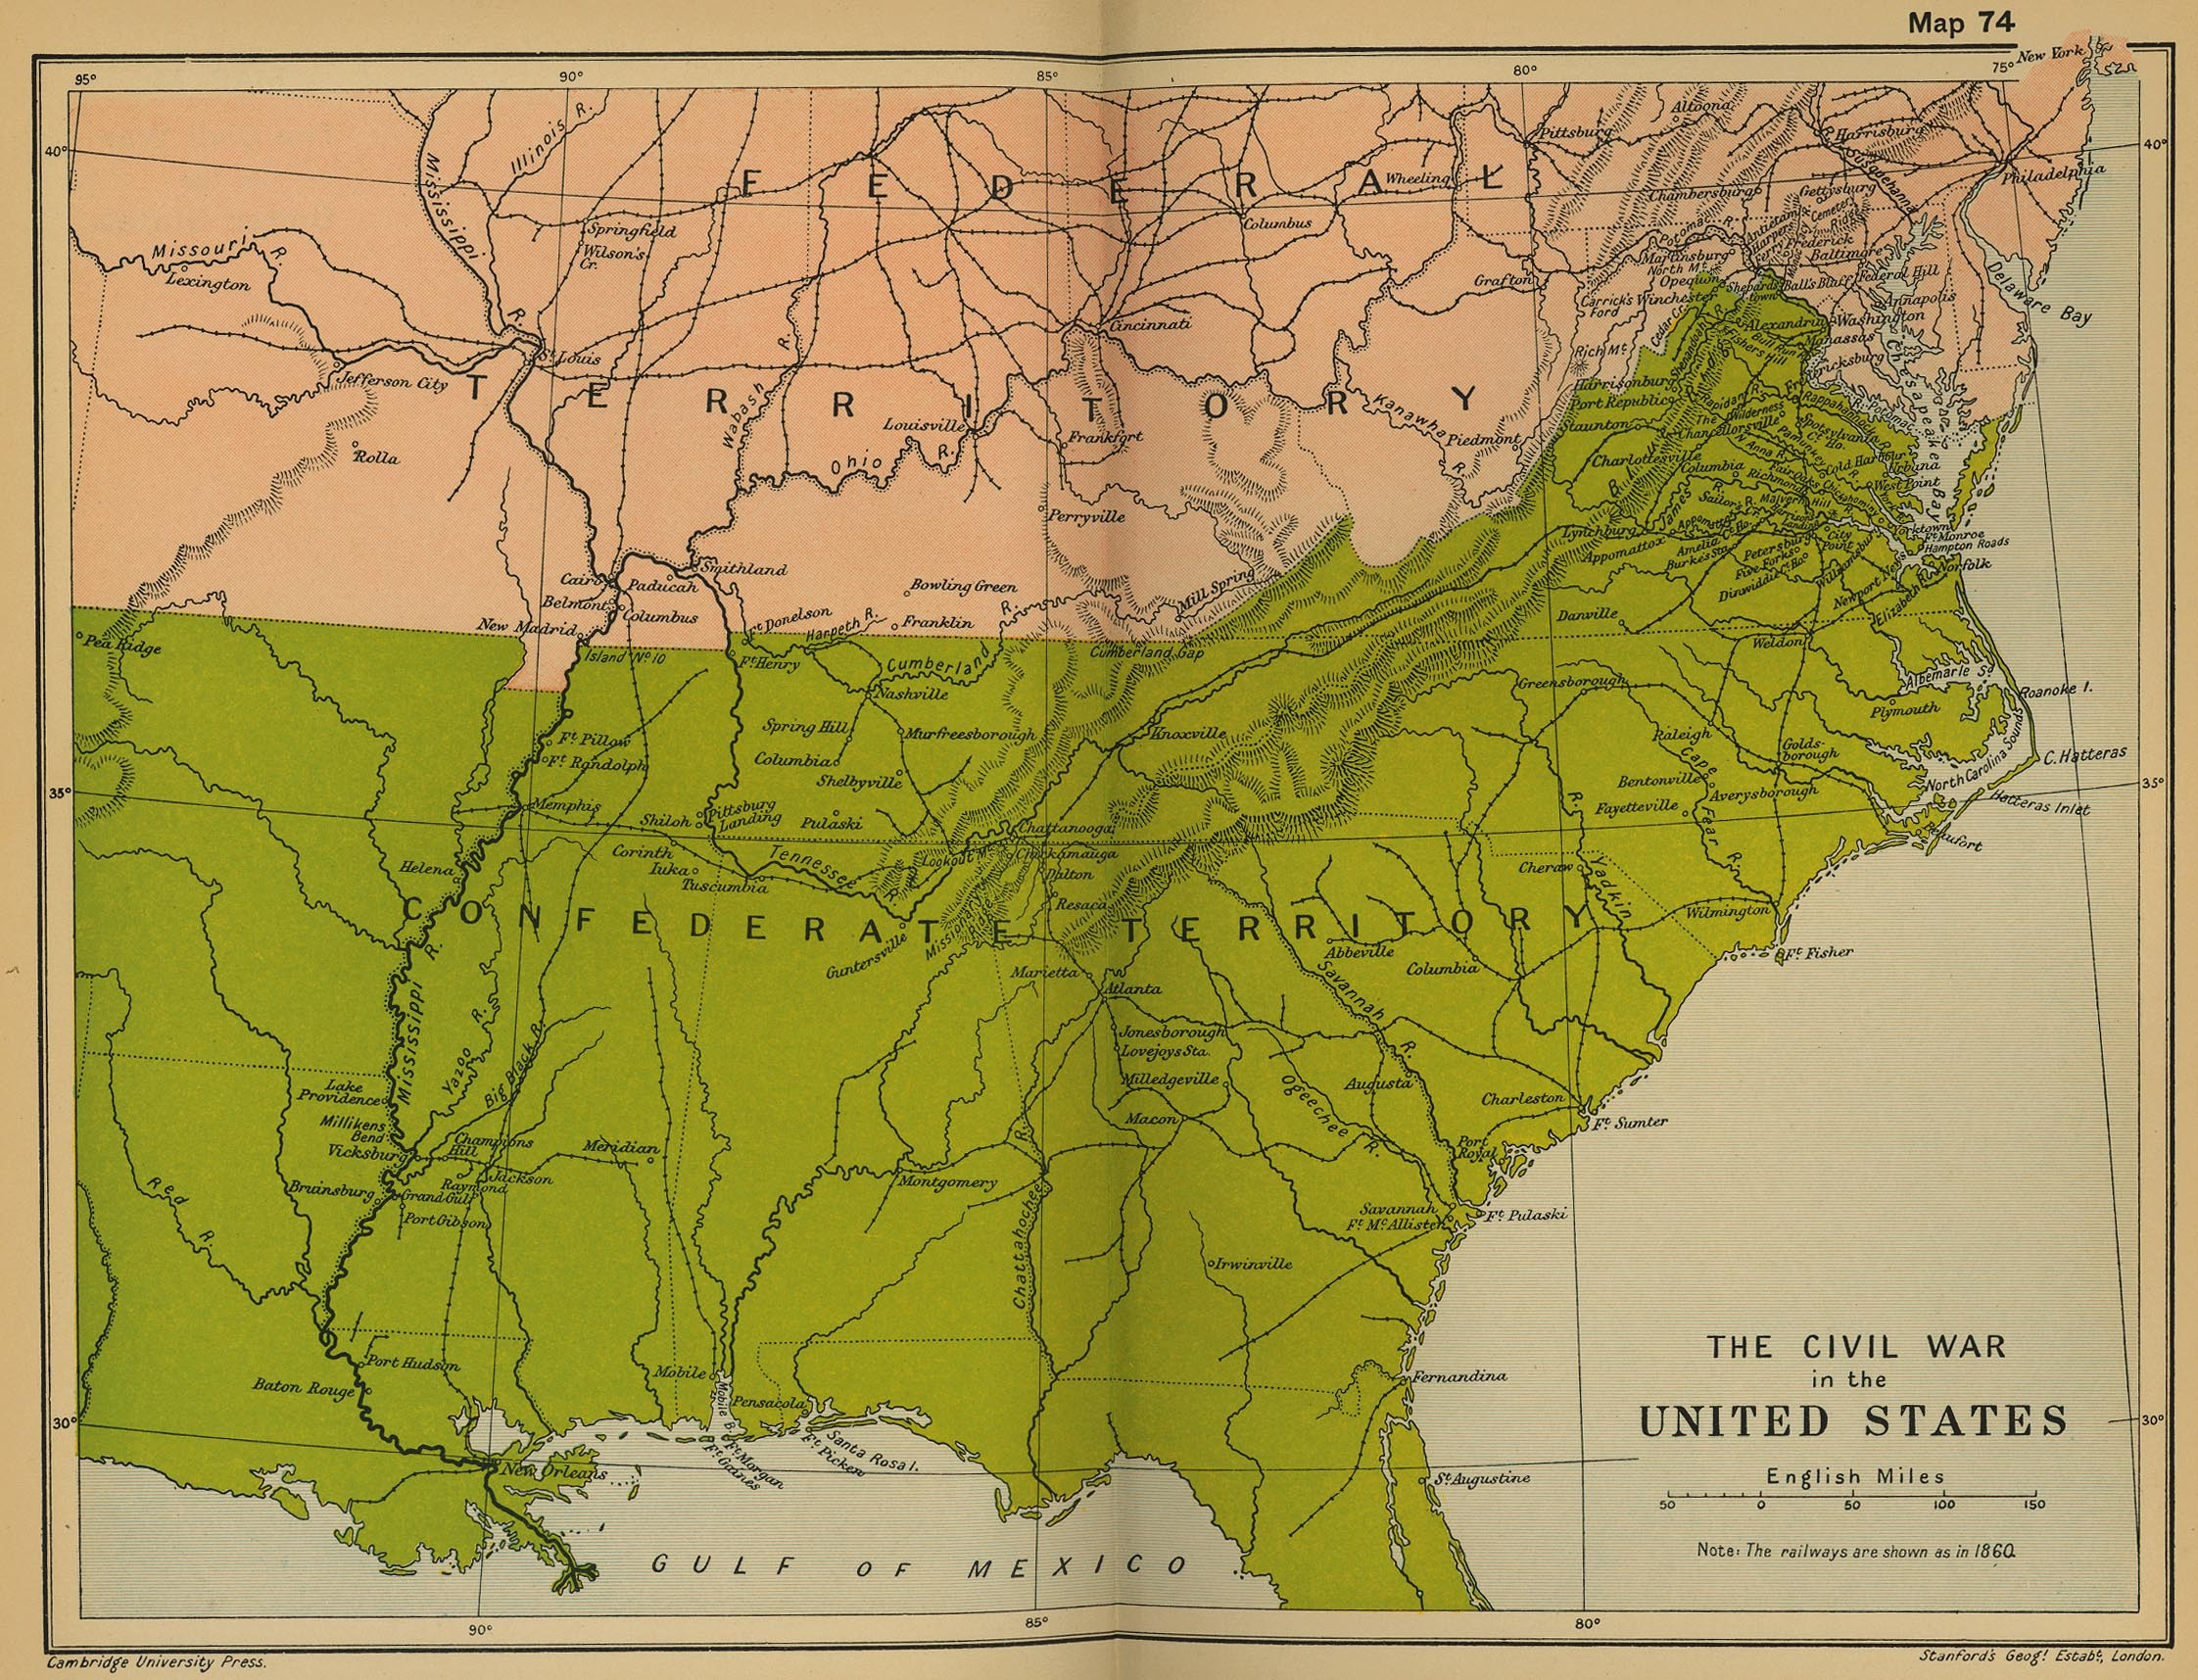 Map Of The Civil War In The United States